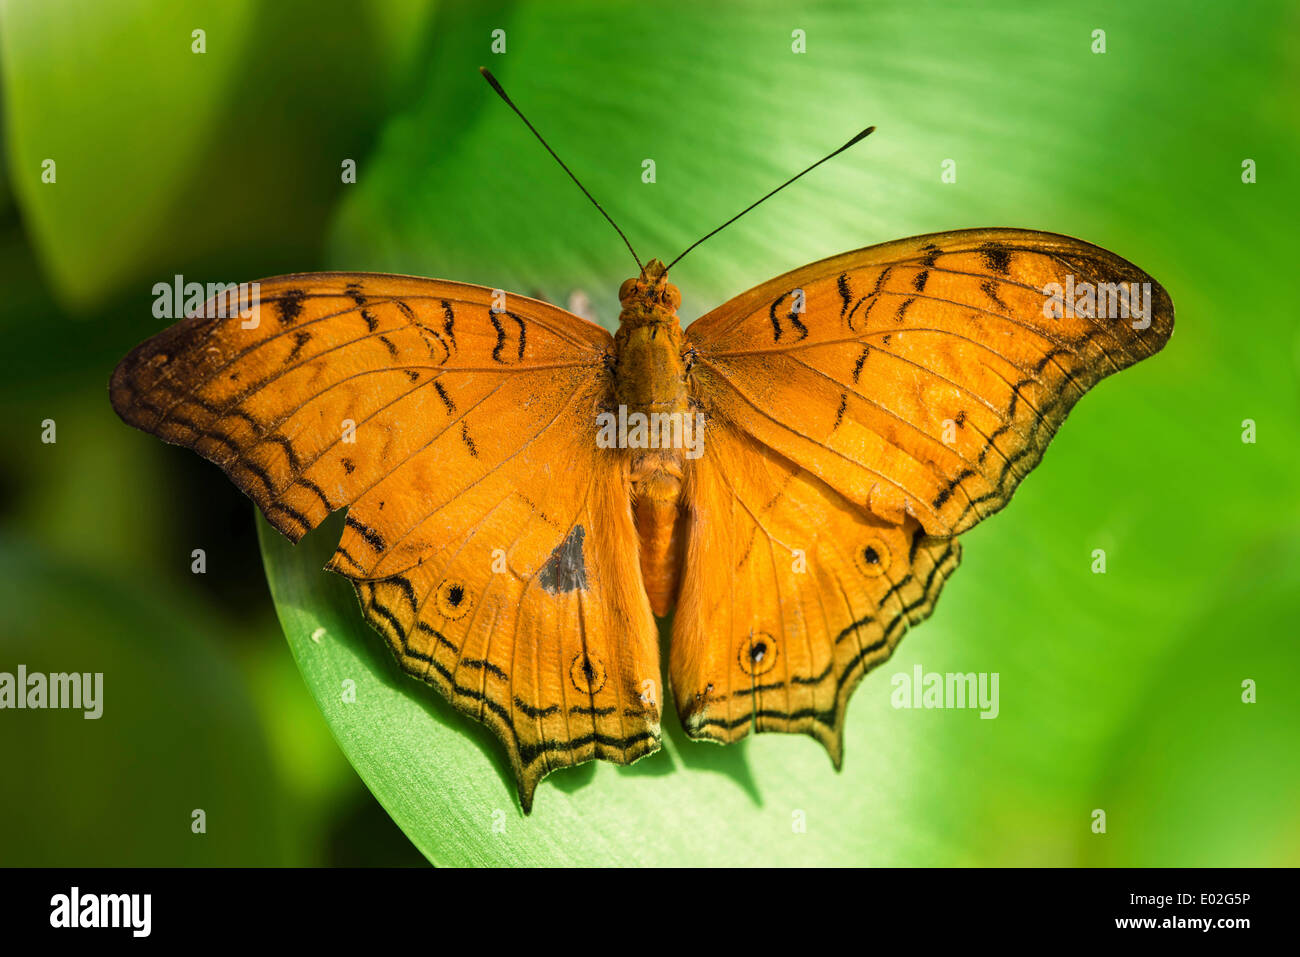 Brush-footed Butterfly (Nymphalidae), captive, Munich - Stock Image